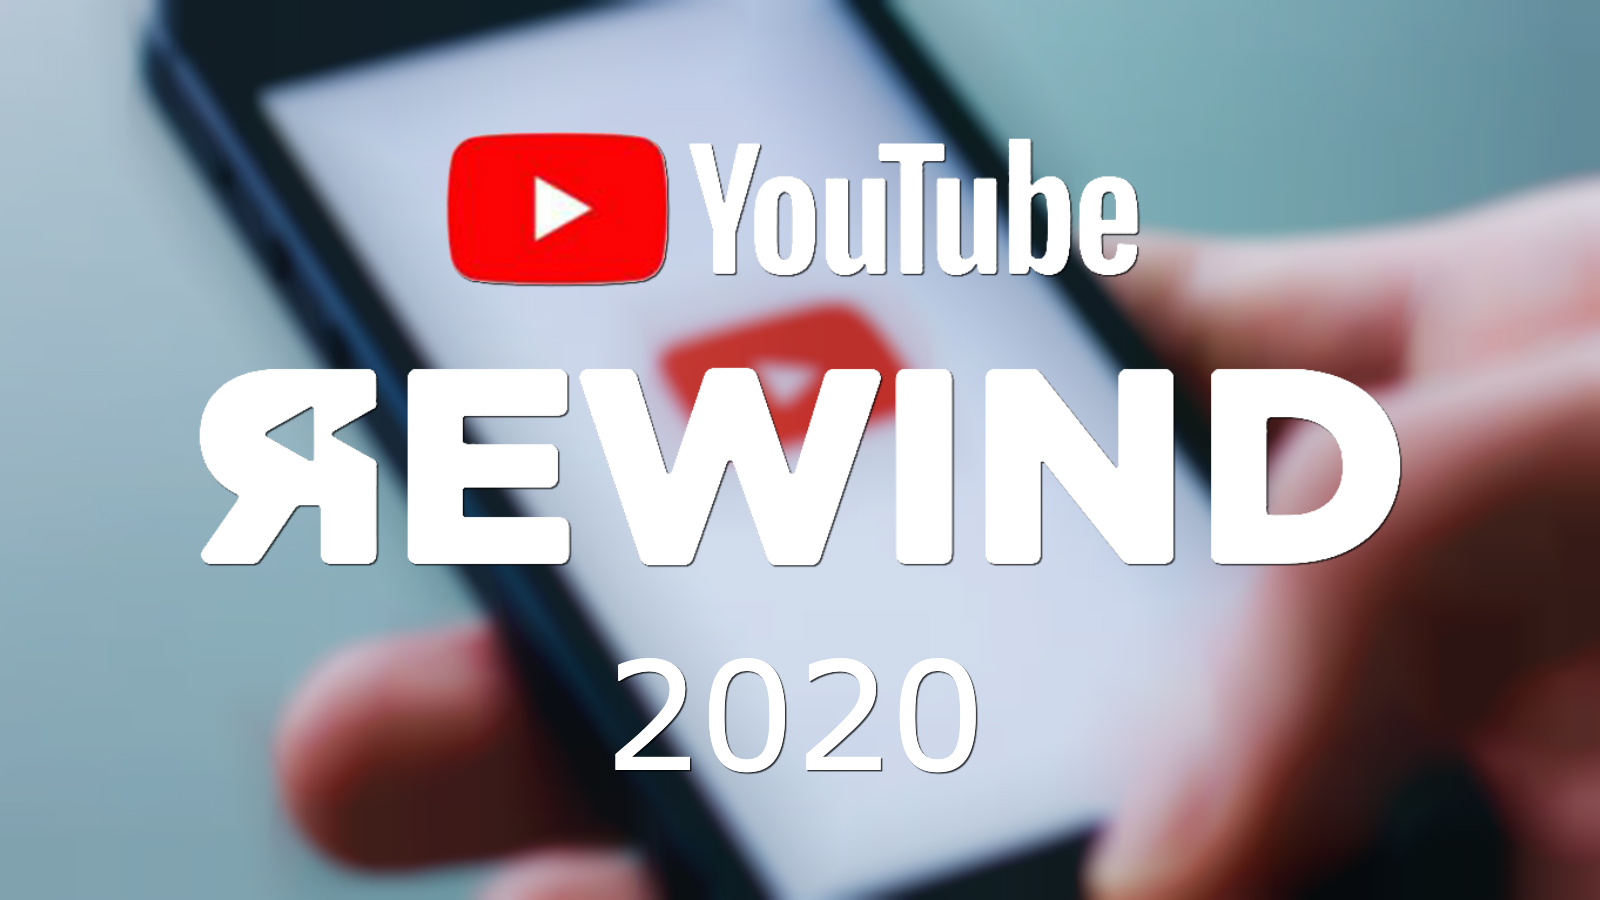 The YouTube Rewind logo is shown above a photo of the YouTube logo on a smart phone.